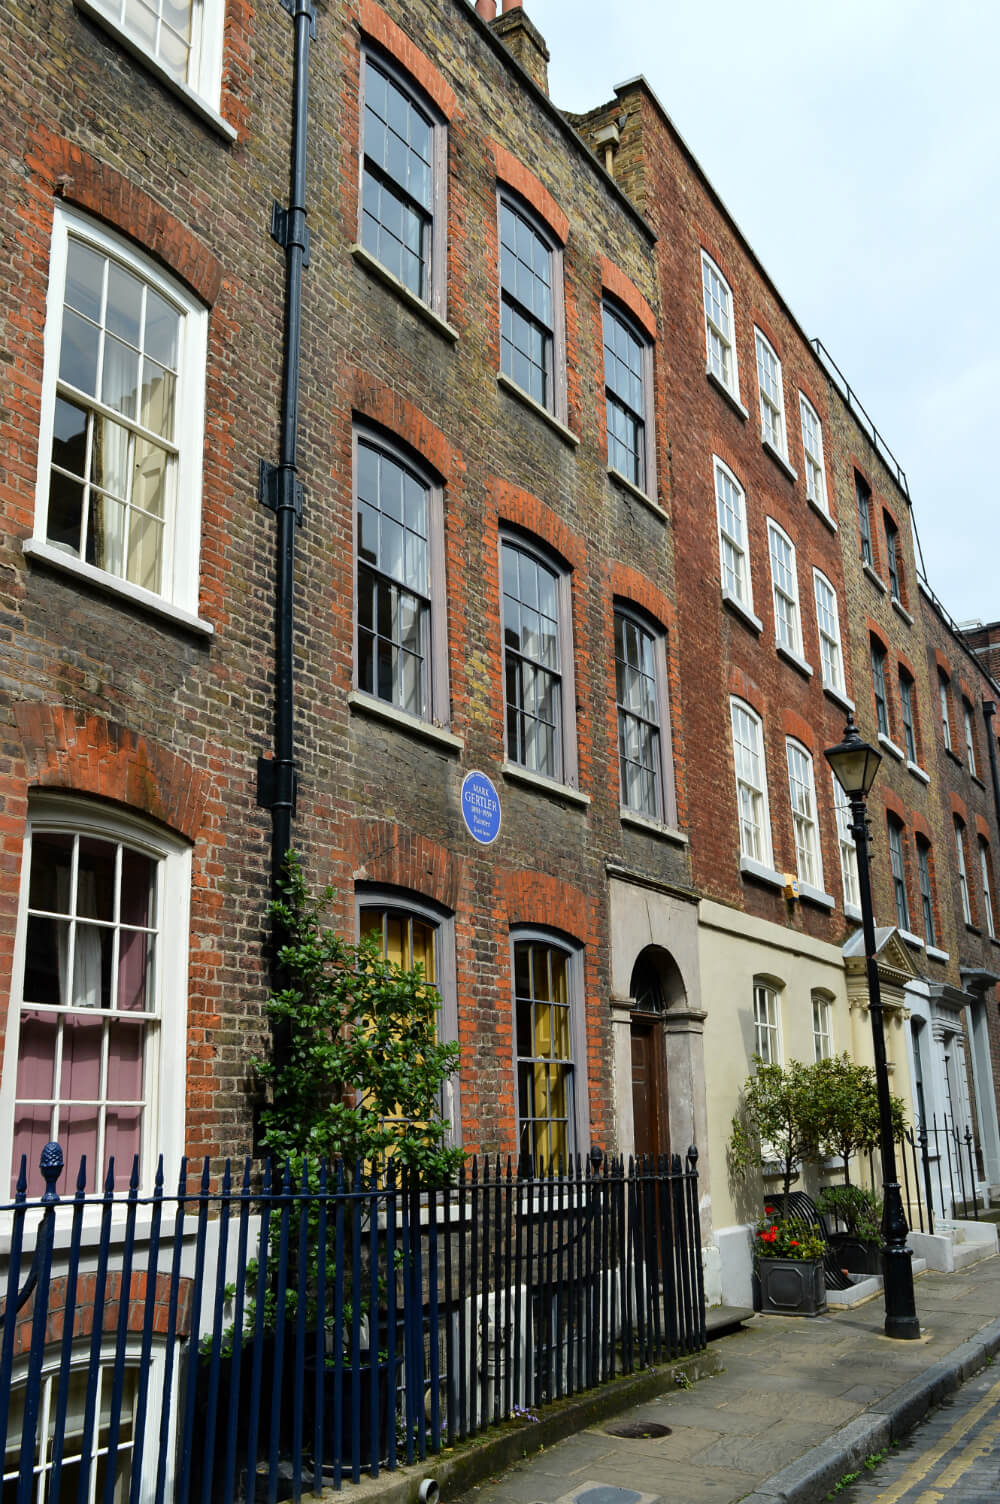 Georgian houses in Elder Street, Spitalfields, London